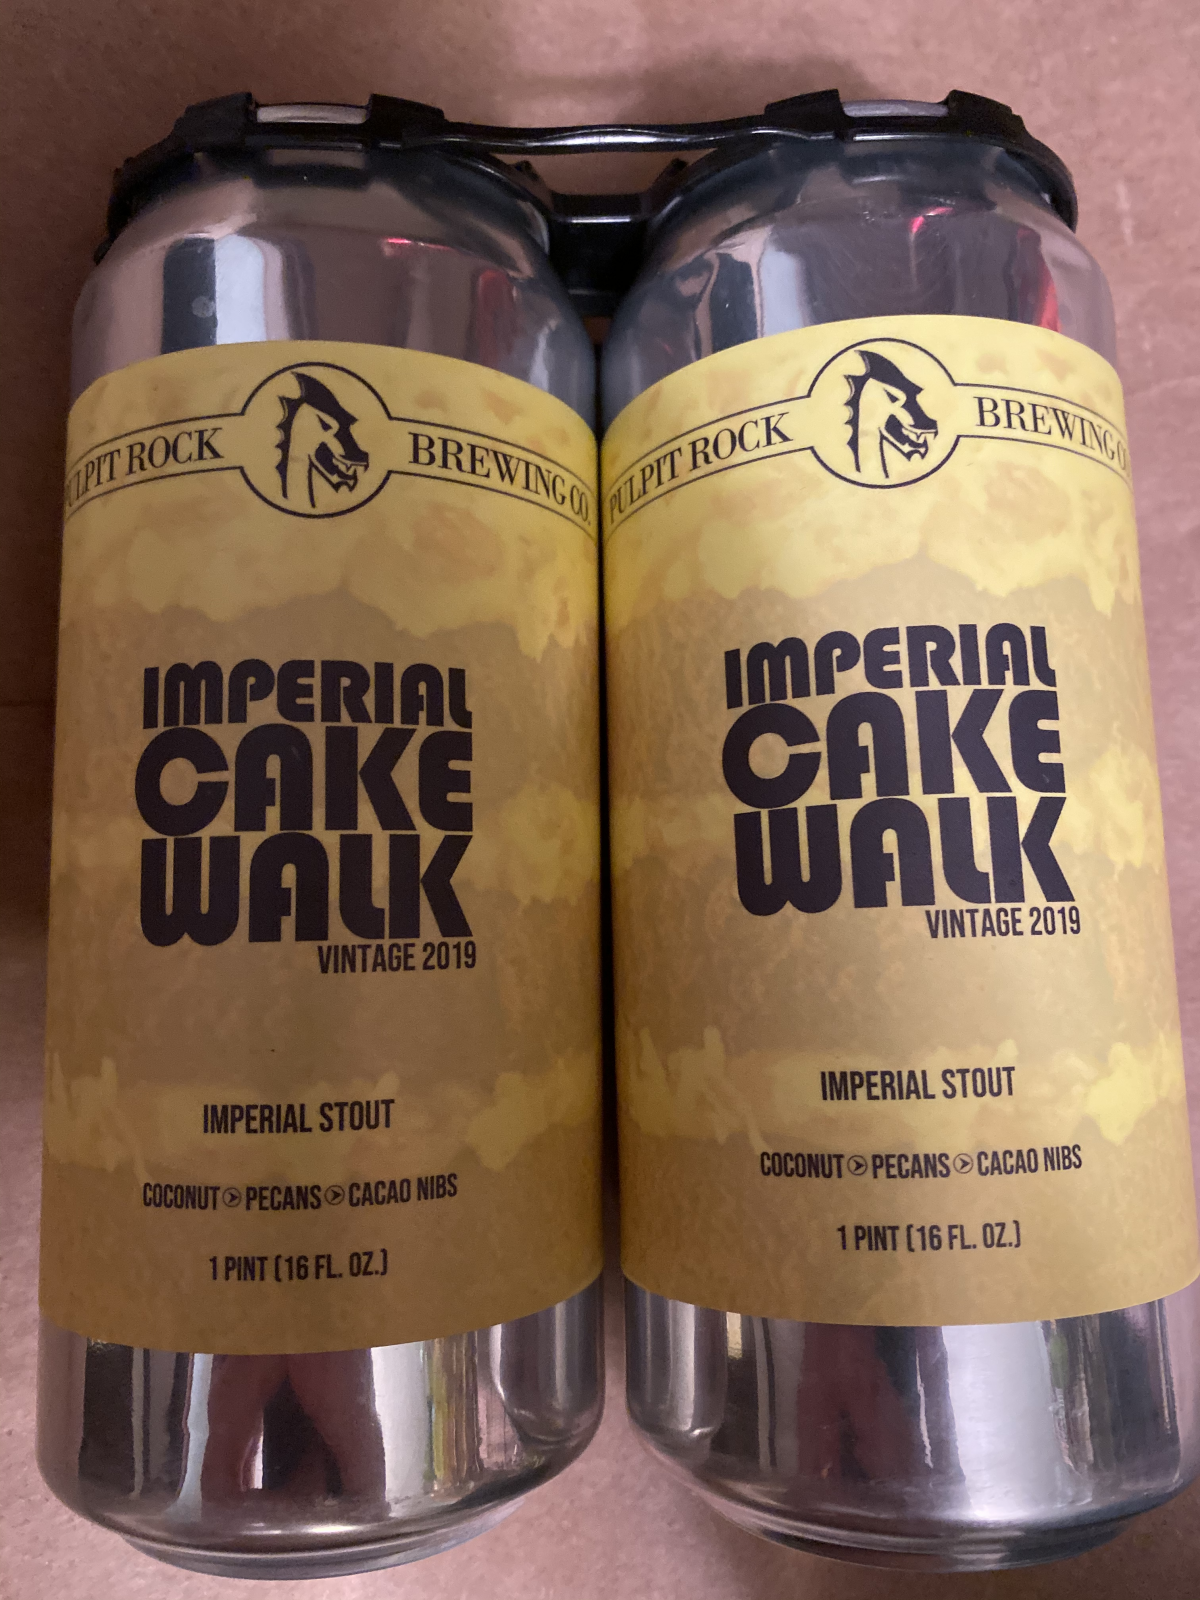 Imperial Cake Walk - Pulpit Rock - 2 cans